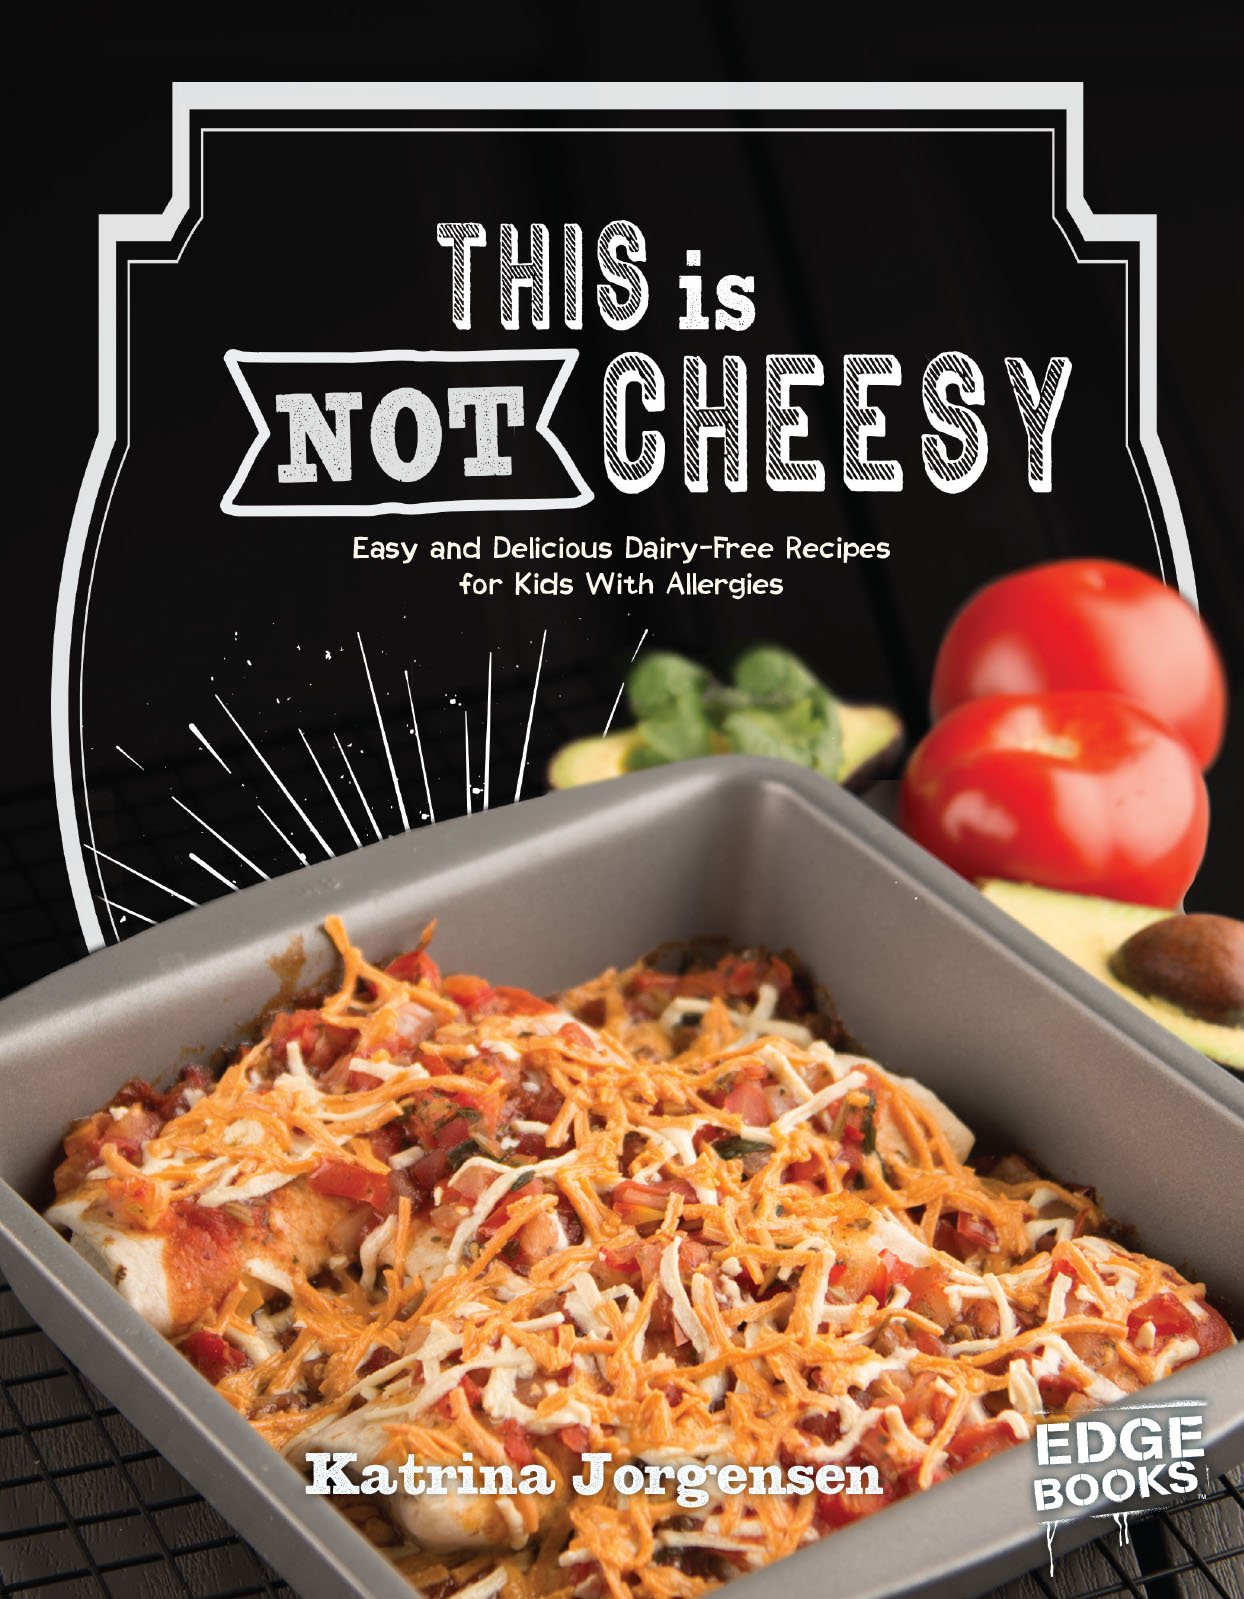 Download This is Not Cheesy!: Easy and Delicious Dairy-Free Recipes for Kids With Allergies (Allergy Aware Cookbooks) pdf epub